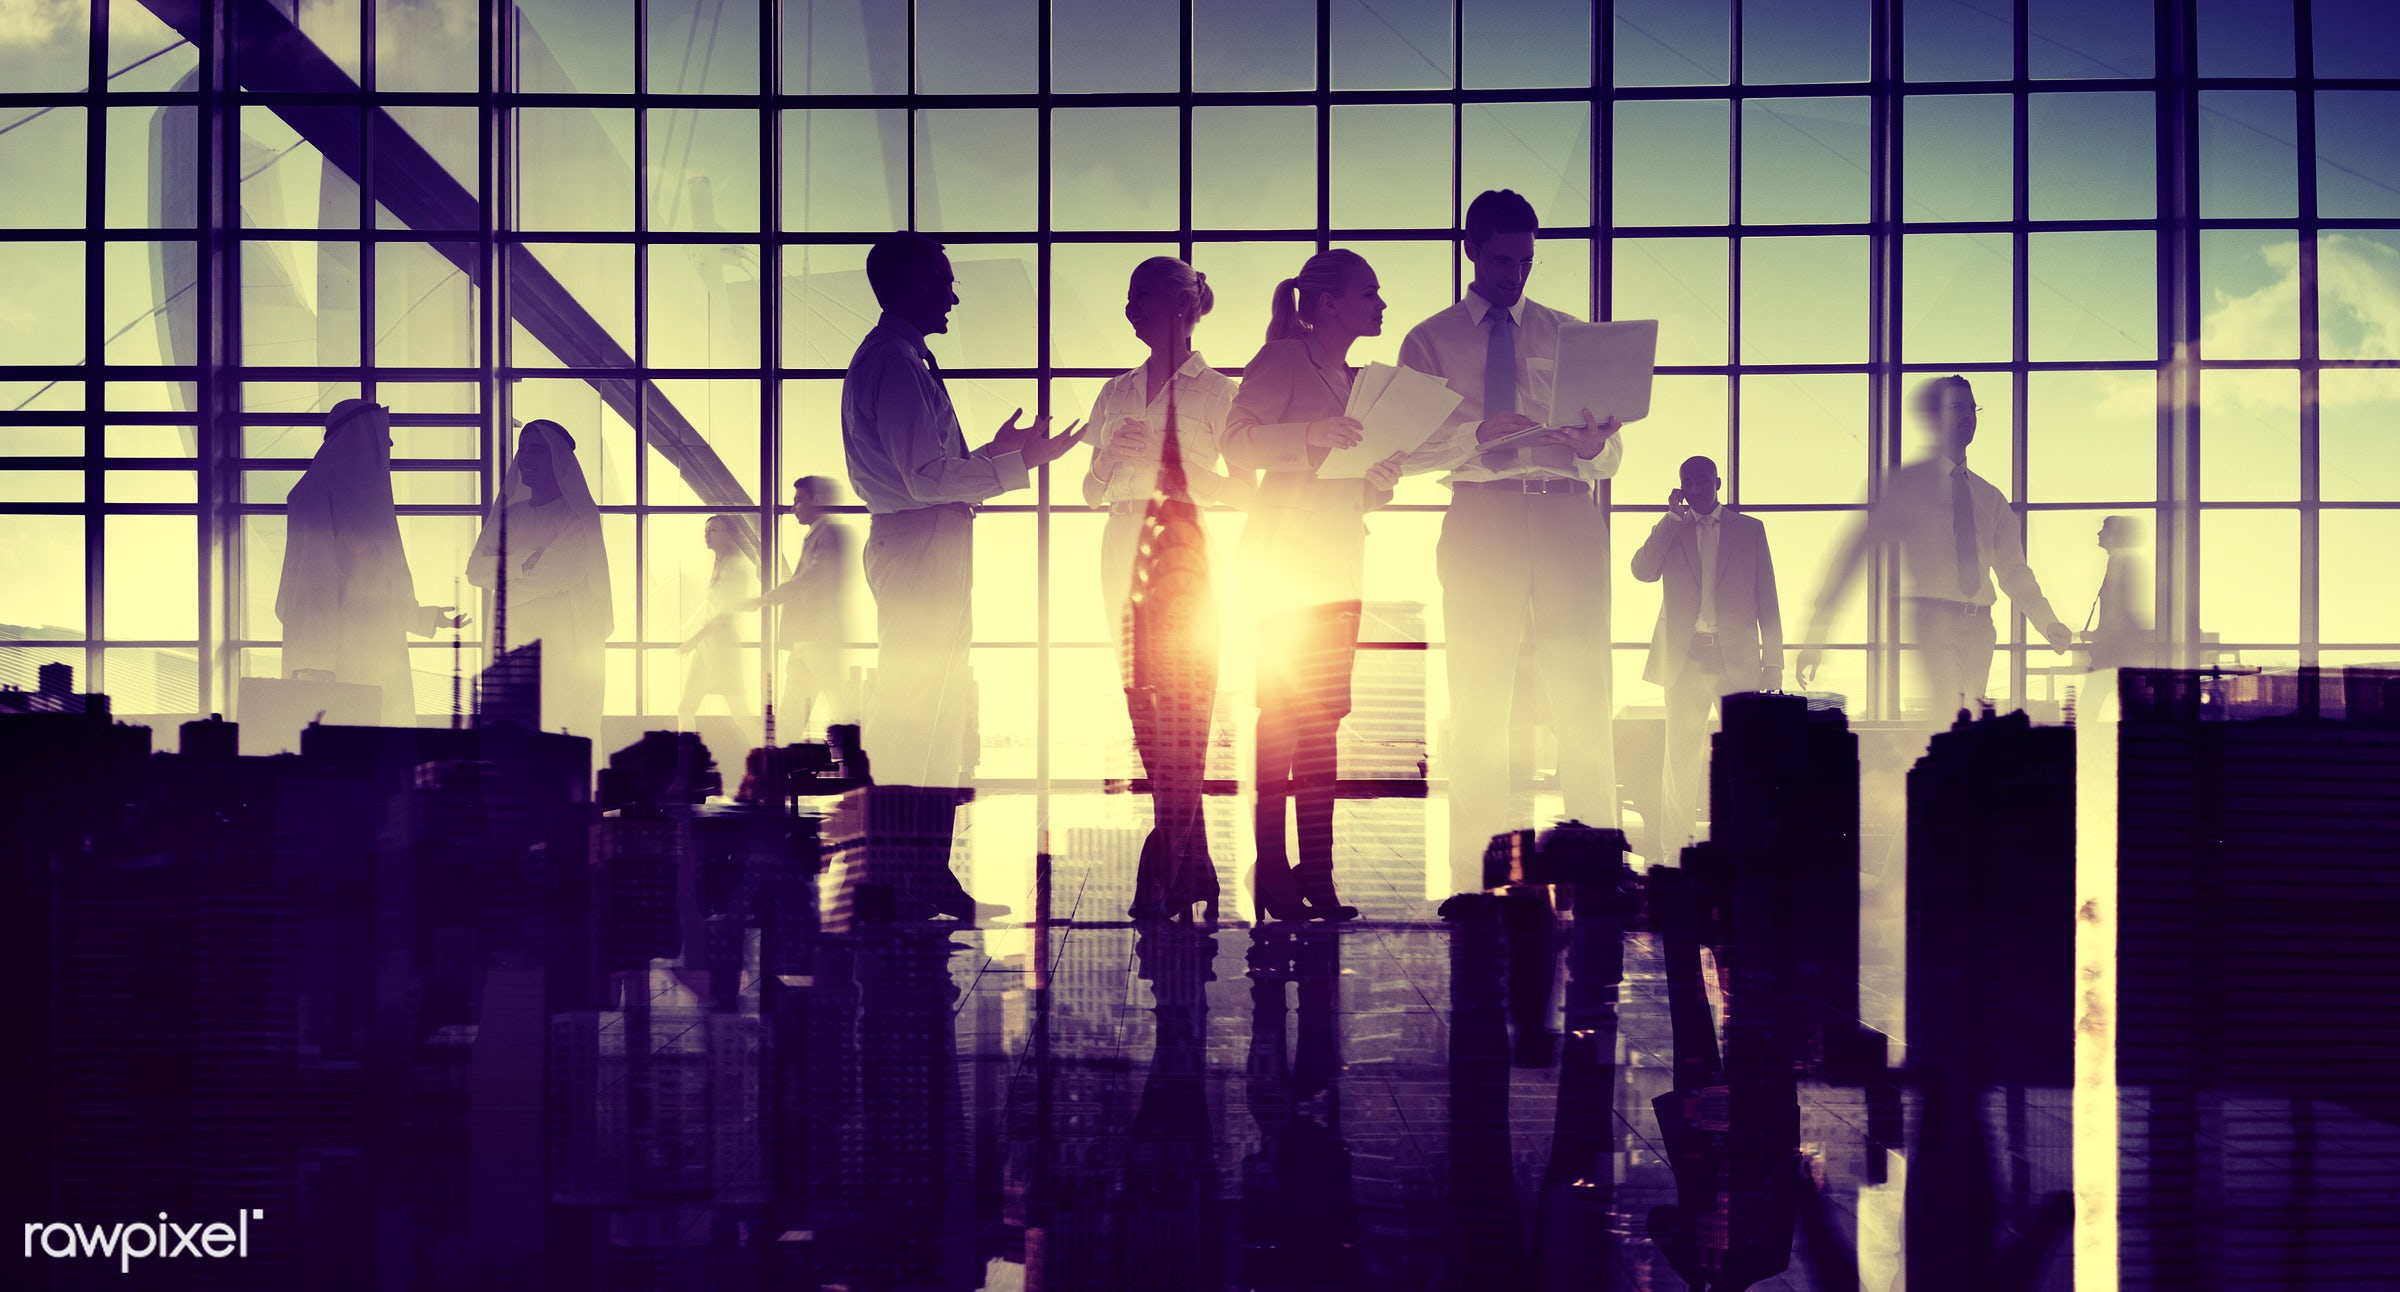 administration, board room, brainstorming, building, business, business people, businessmen, businesswomen, city, city life...